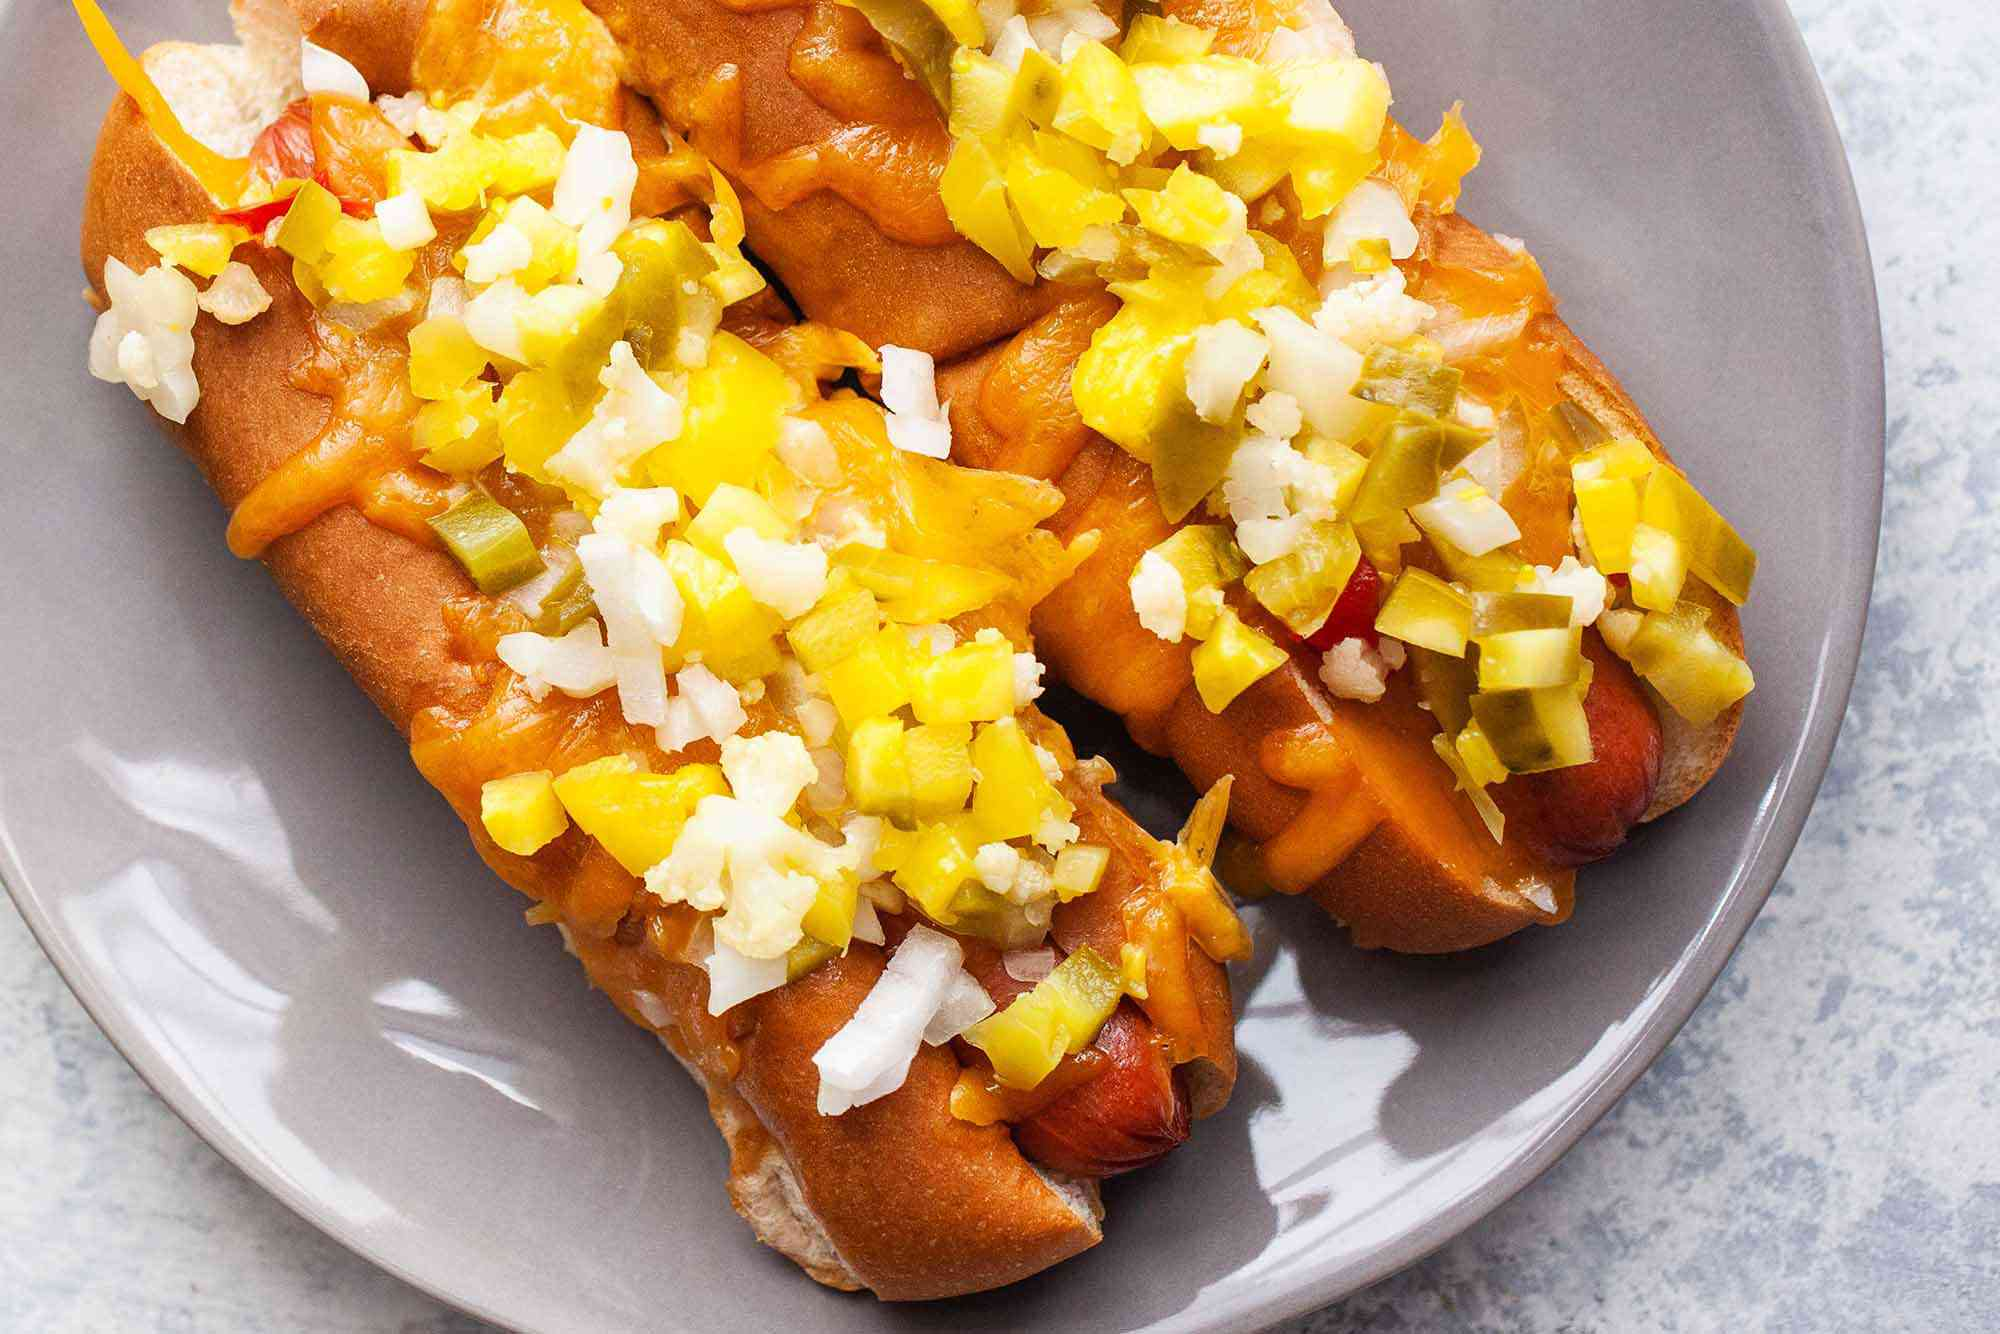 Hot Dog Recipe with Cheese serve the dogs